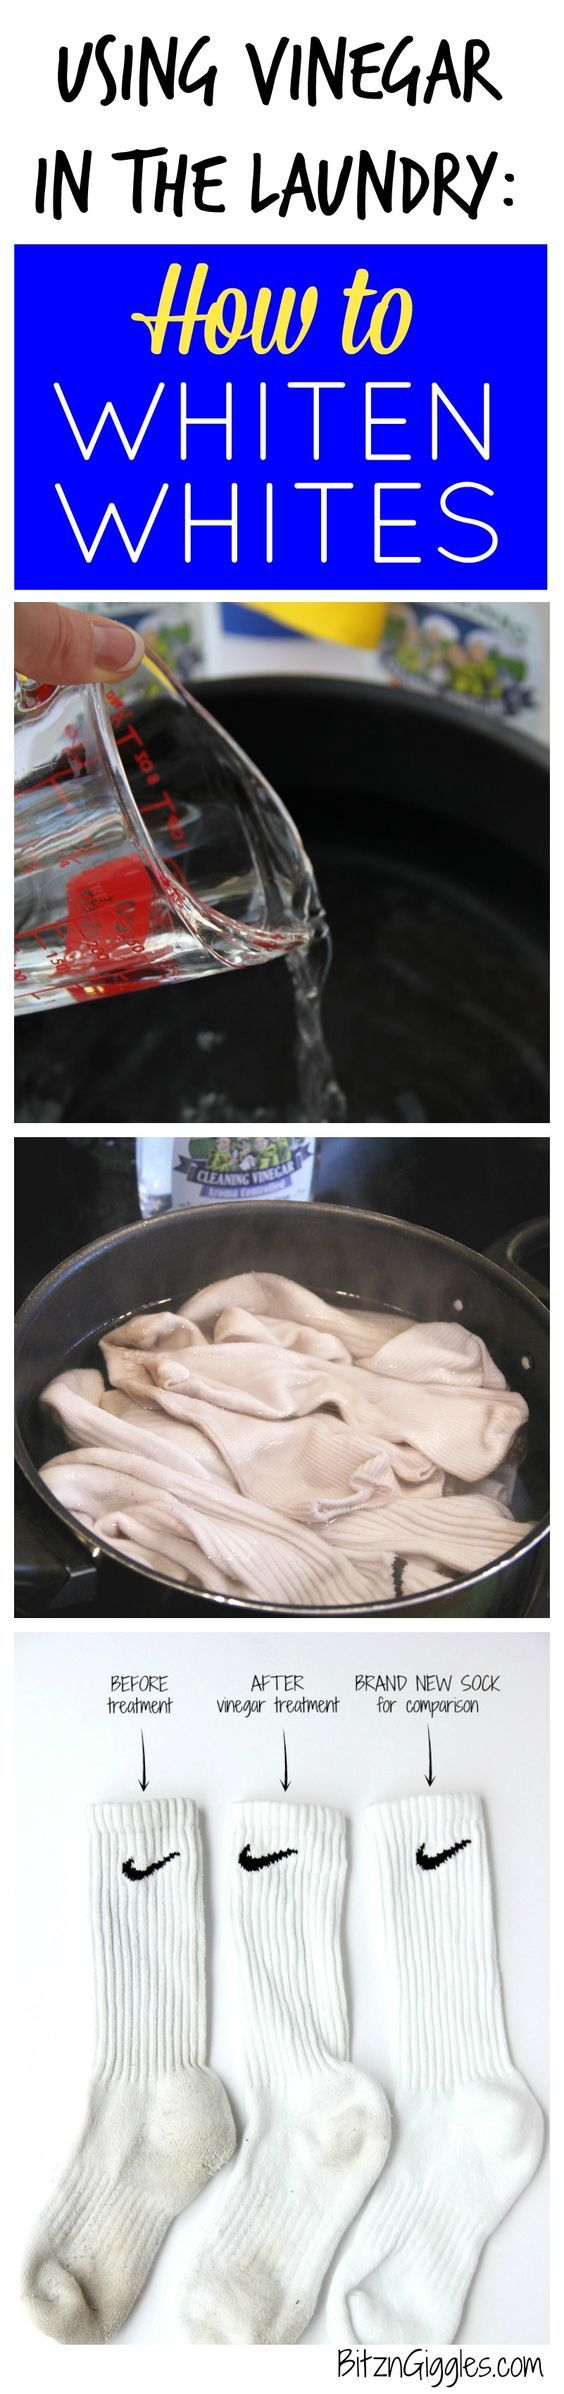 Using Vinegar in the Laundry: How to Whiten Whites - Tutorial on using a natural cleaner to brighten dingy white socks and clothes! It really works!